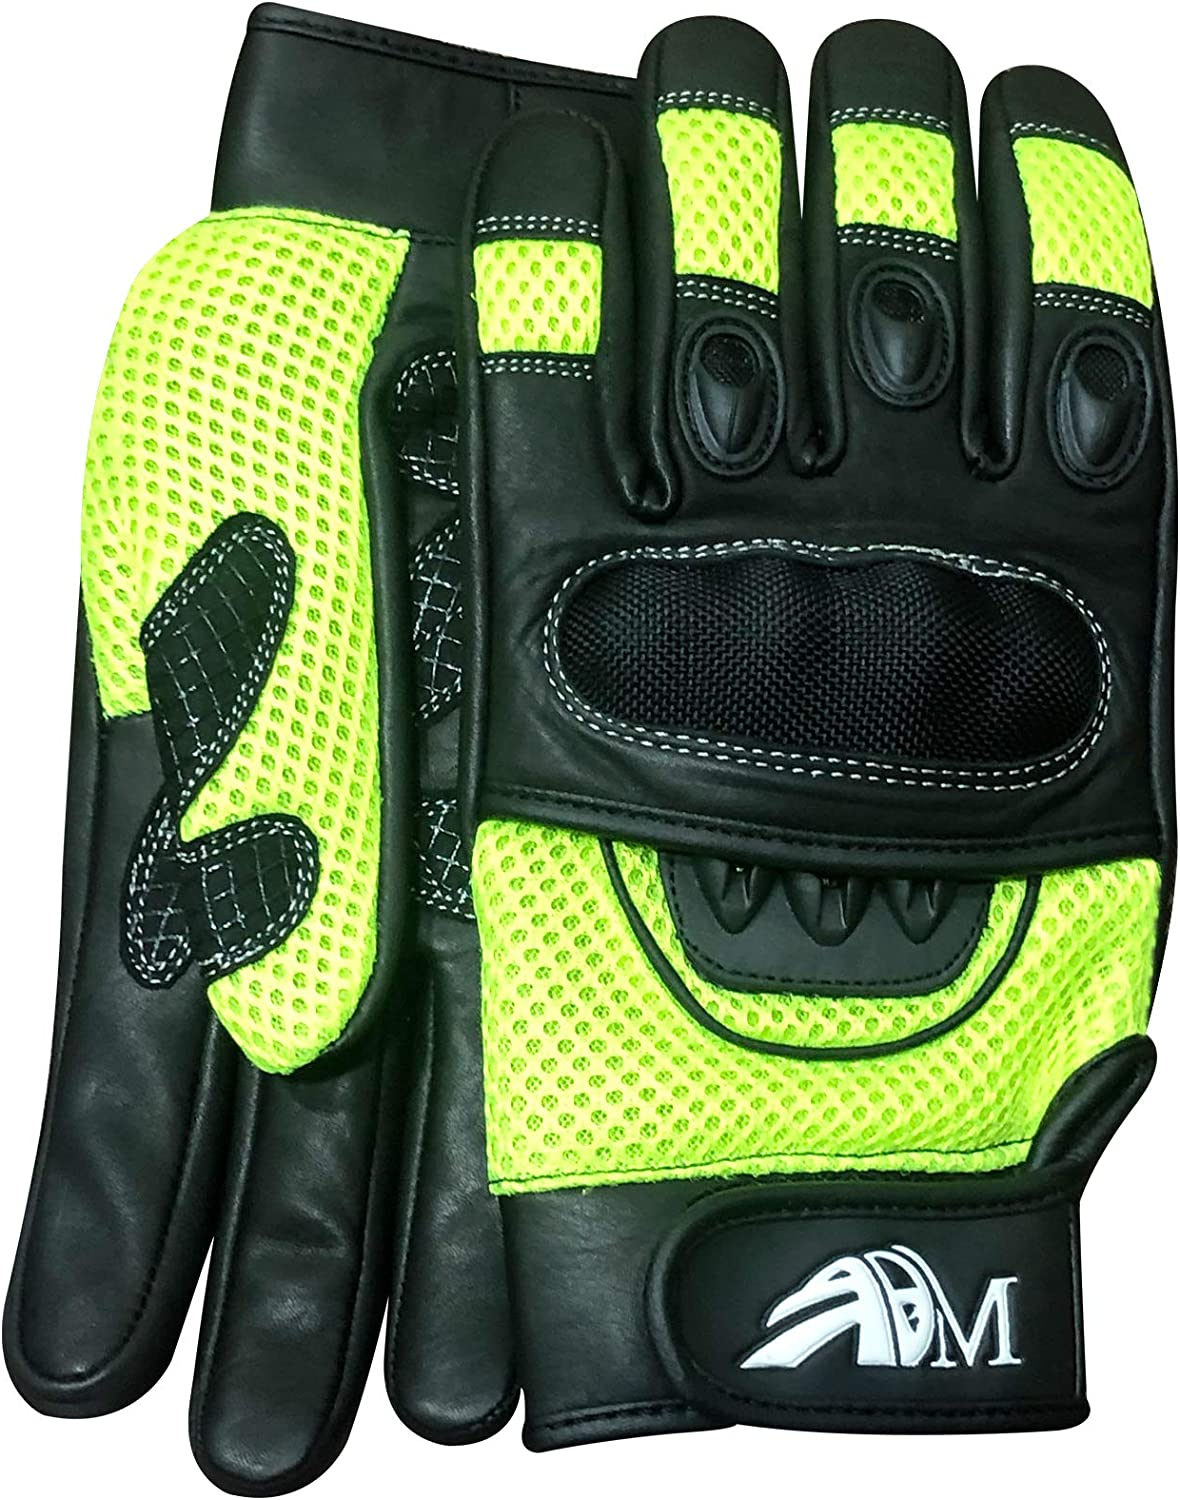 9001 Black, L Ultimate Pro-biker Cow Analine Leather Sports Motorcycle Motorbike Full Finger Summer Mountain Bicycle Riding Sports Glove with Knuckle Protection for men/'s safety 9001